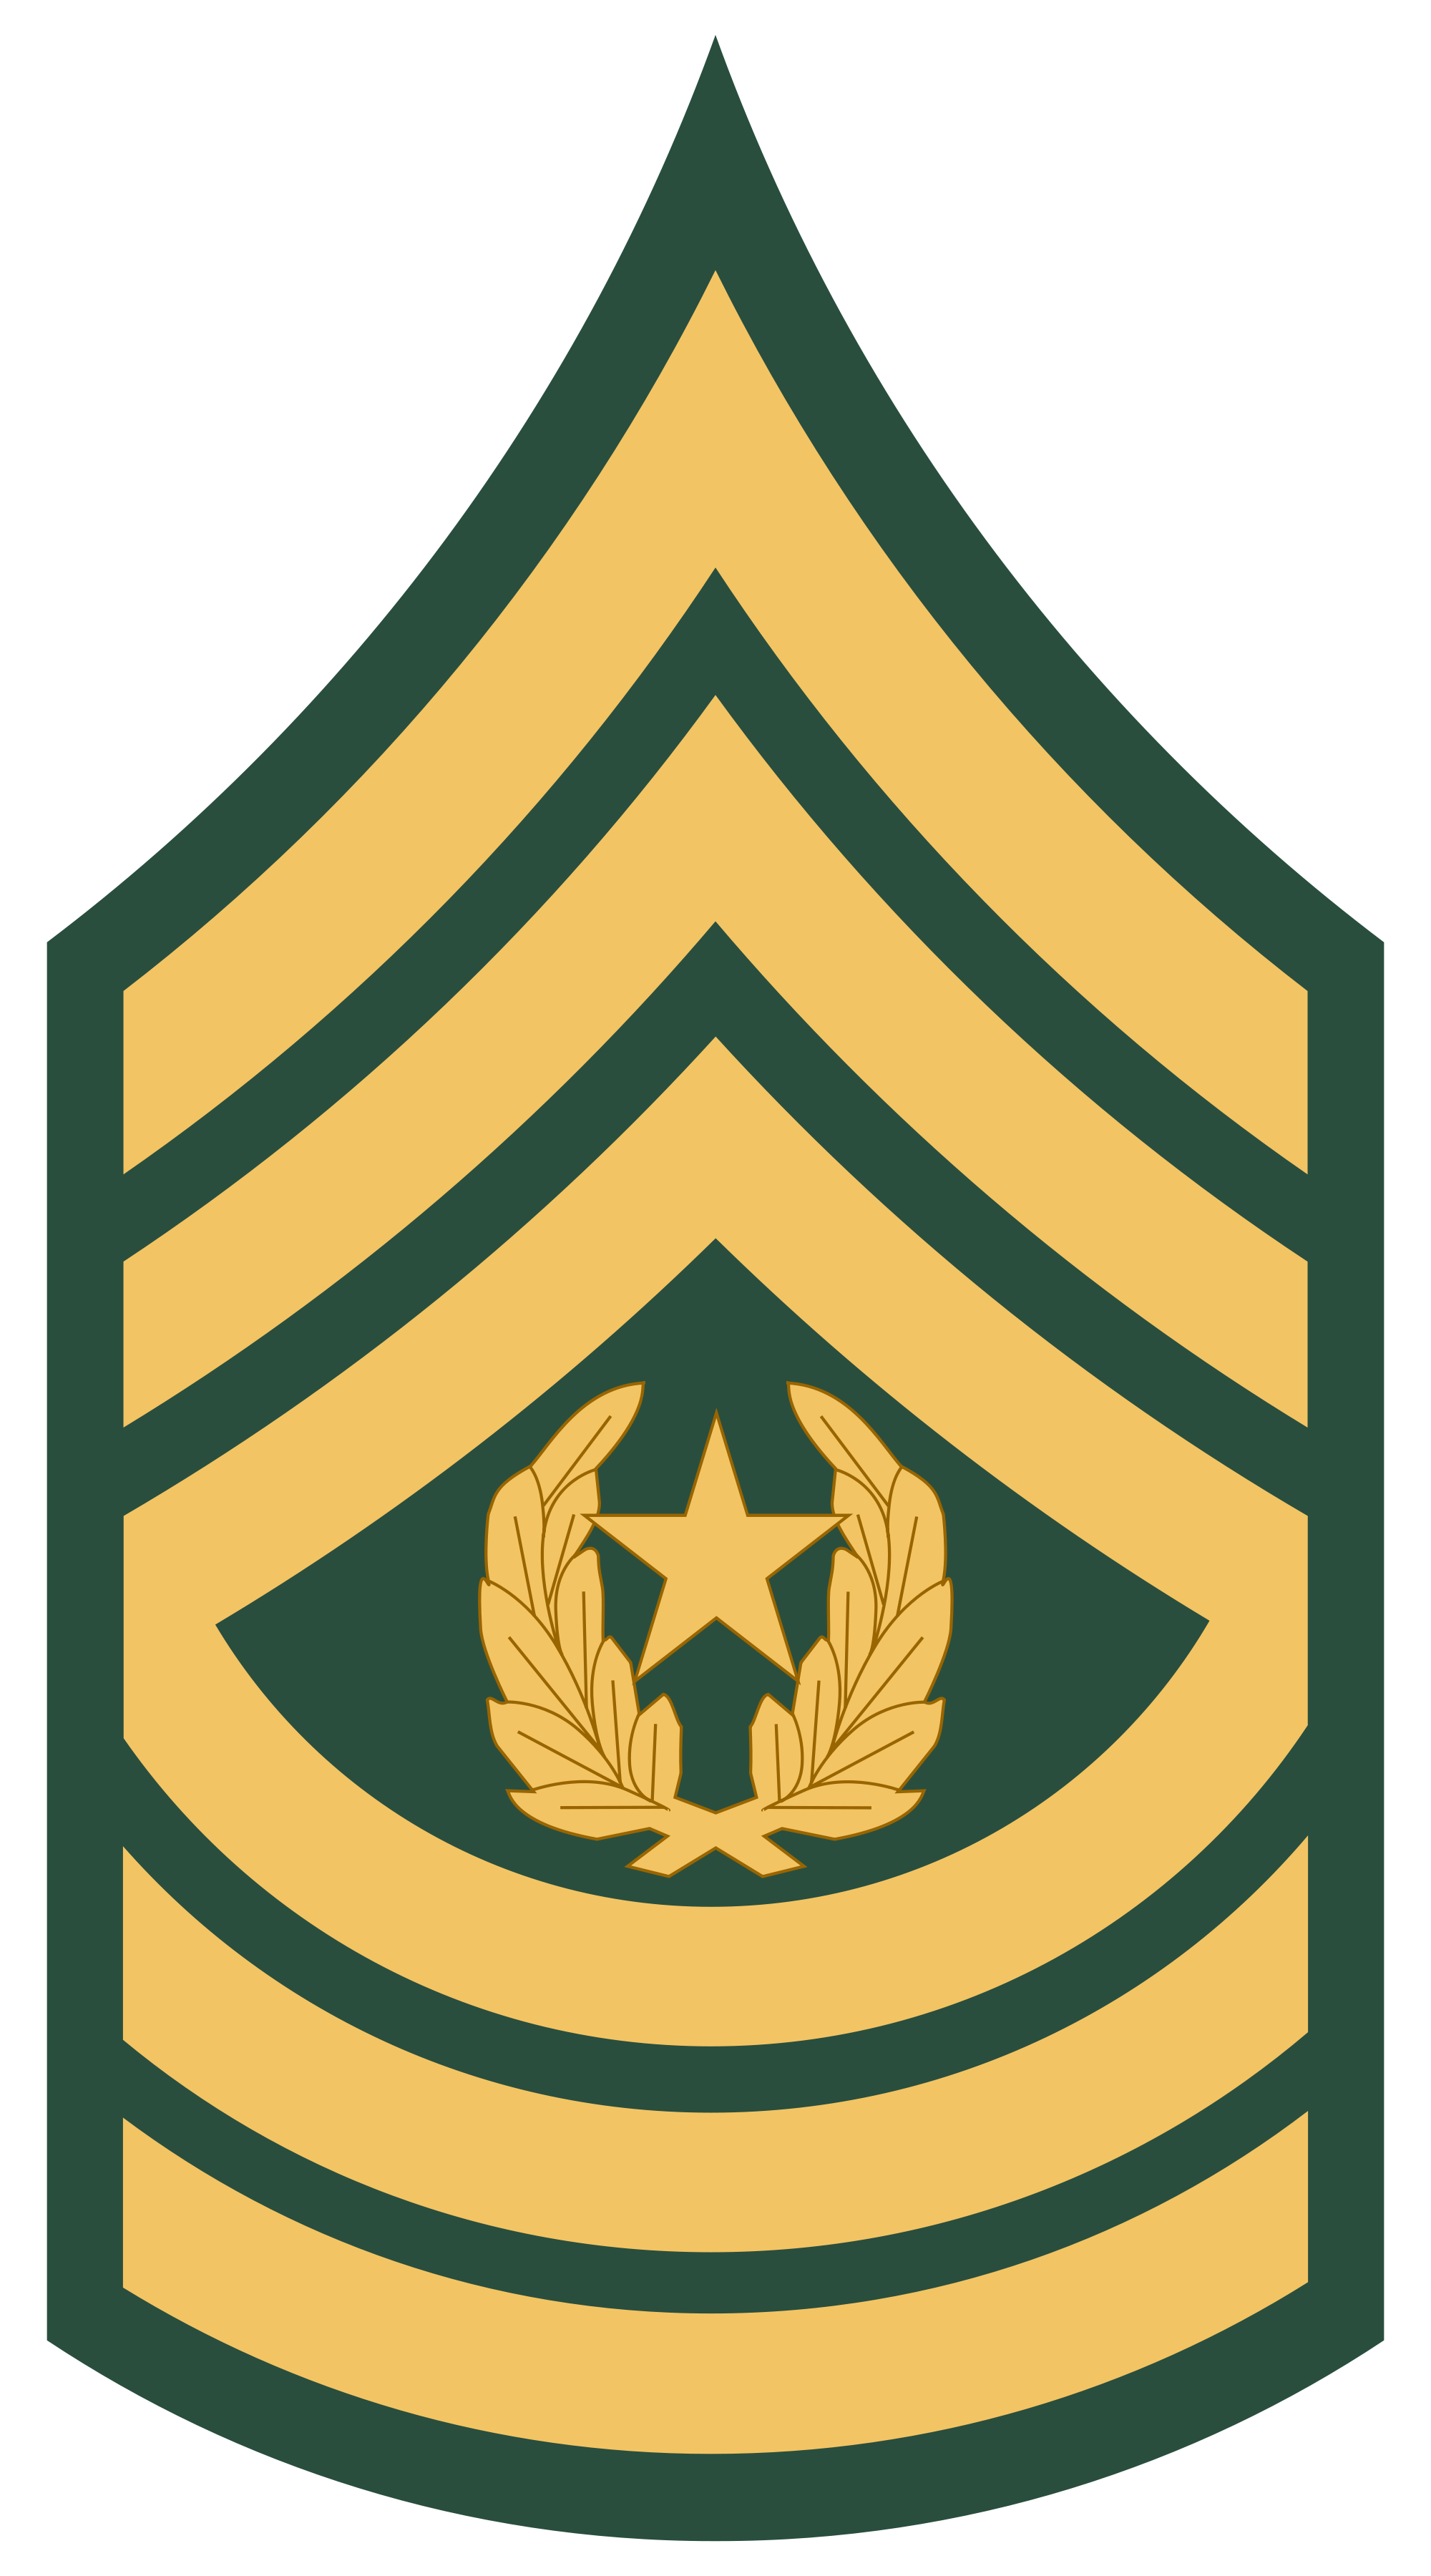 Sergeant major clipart - Clipground